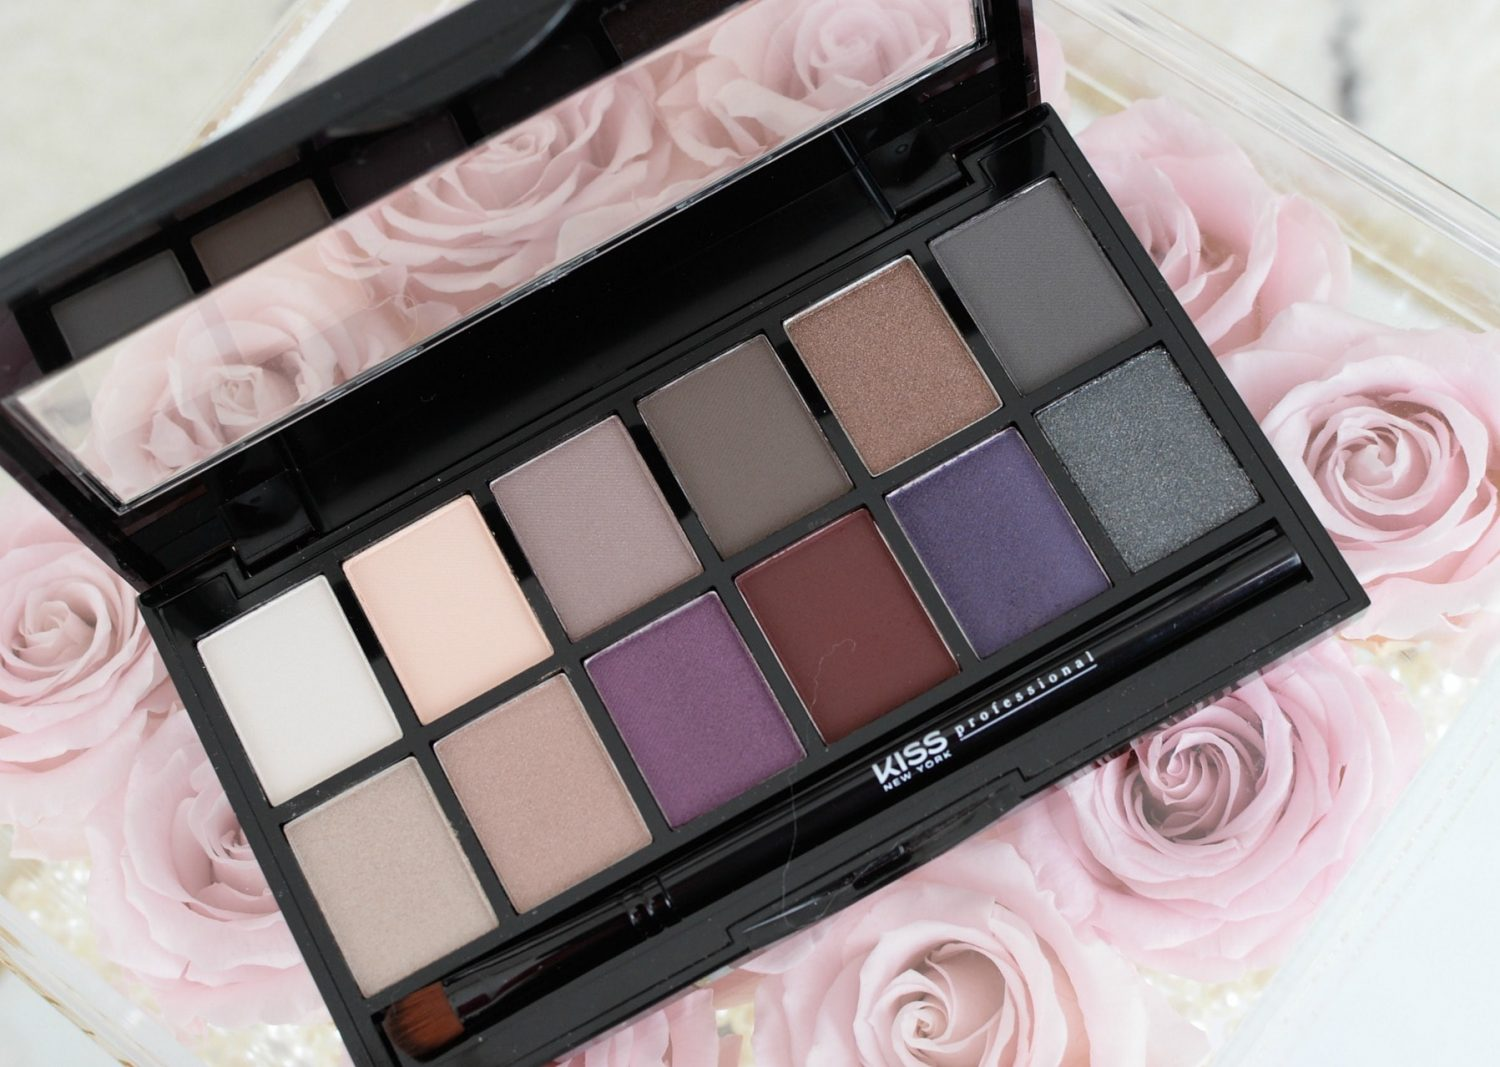 Kiss New York Goddess Eyeshadow Palette | The Pink Millennial